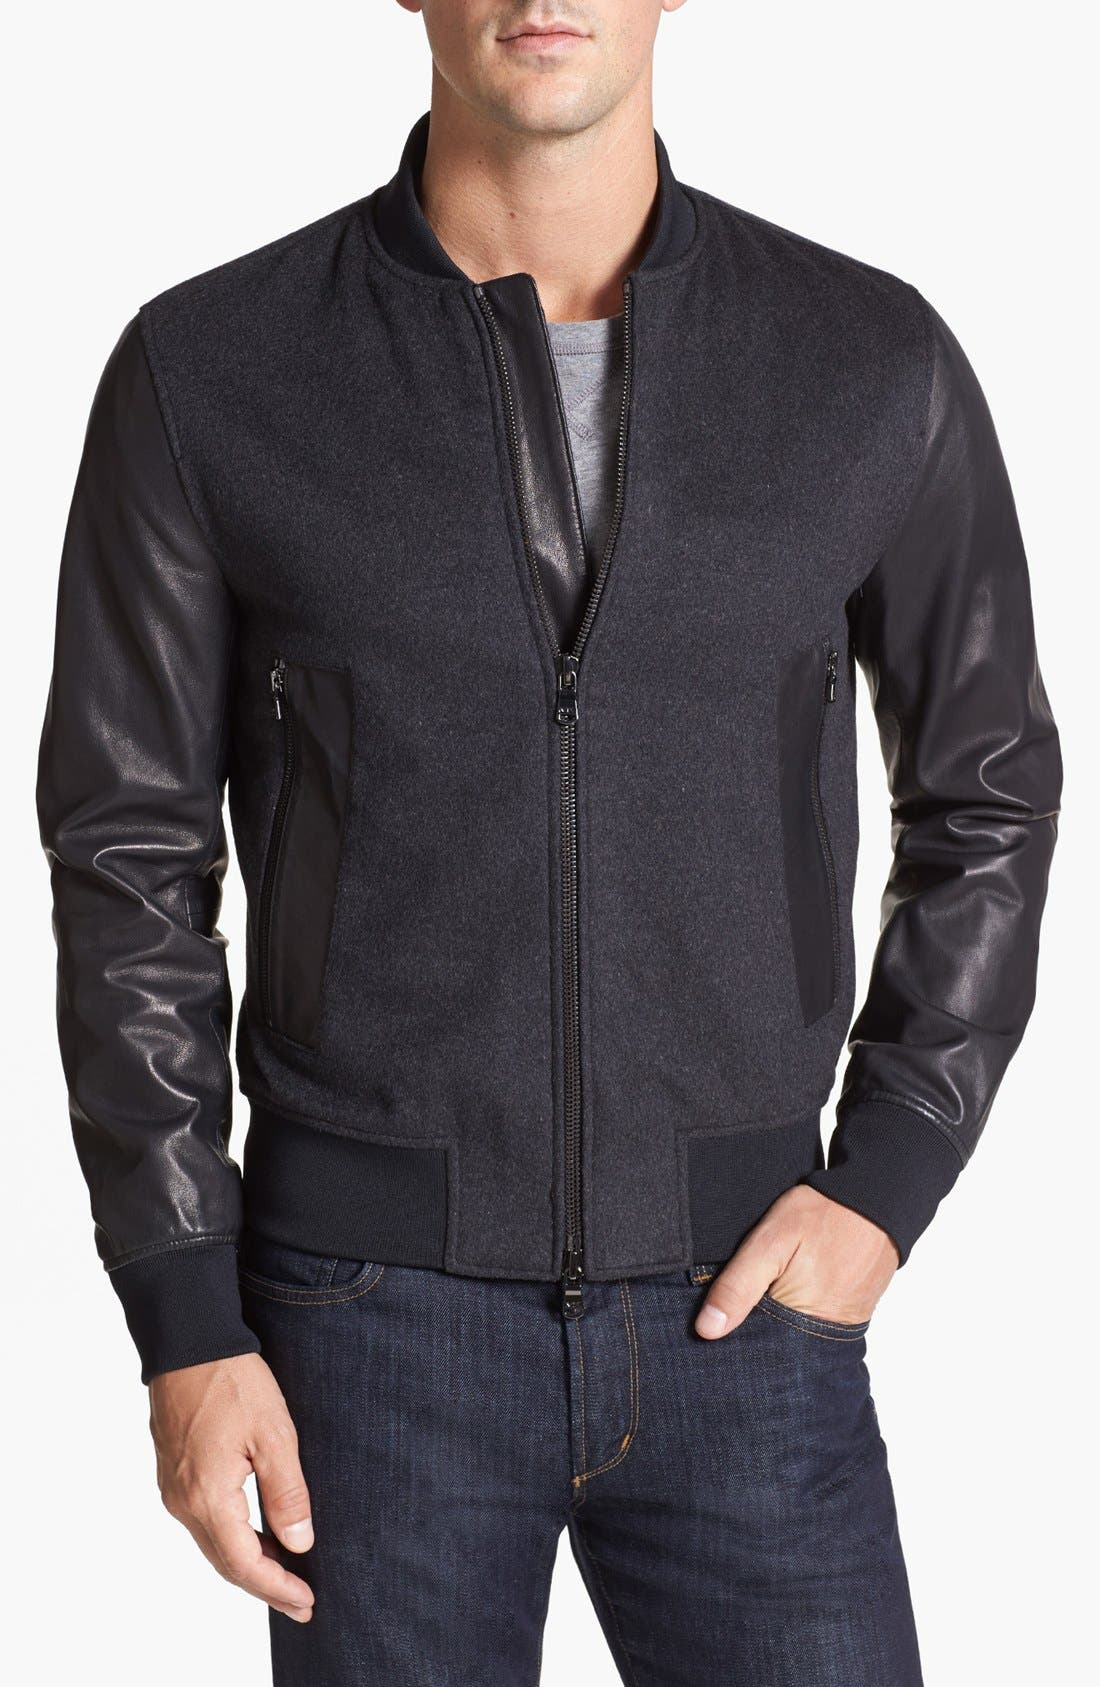 Alternate Image 1 Selected - Michael Kors 'Melton' Leather Sleeve Jacket